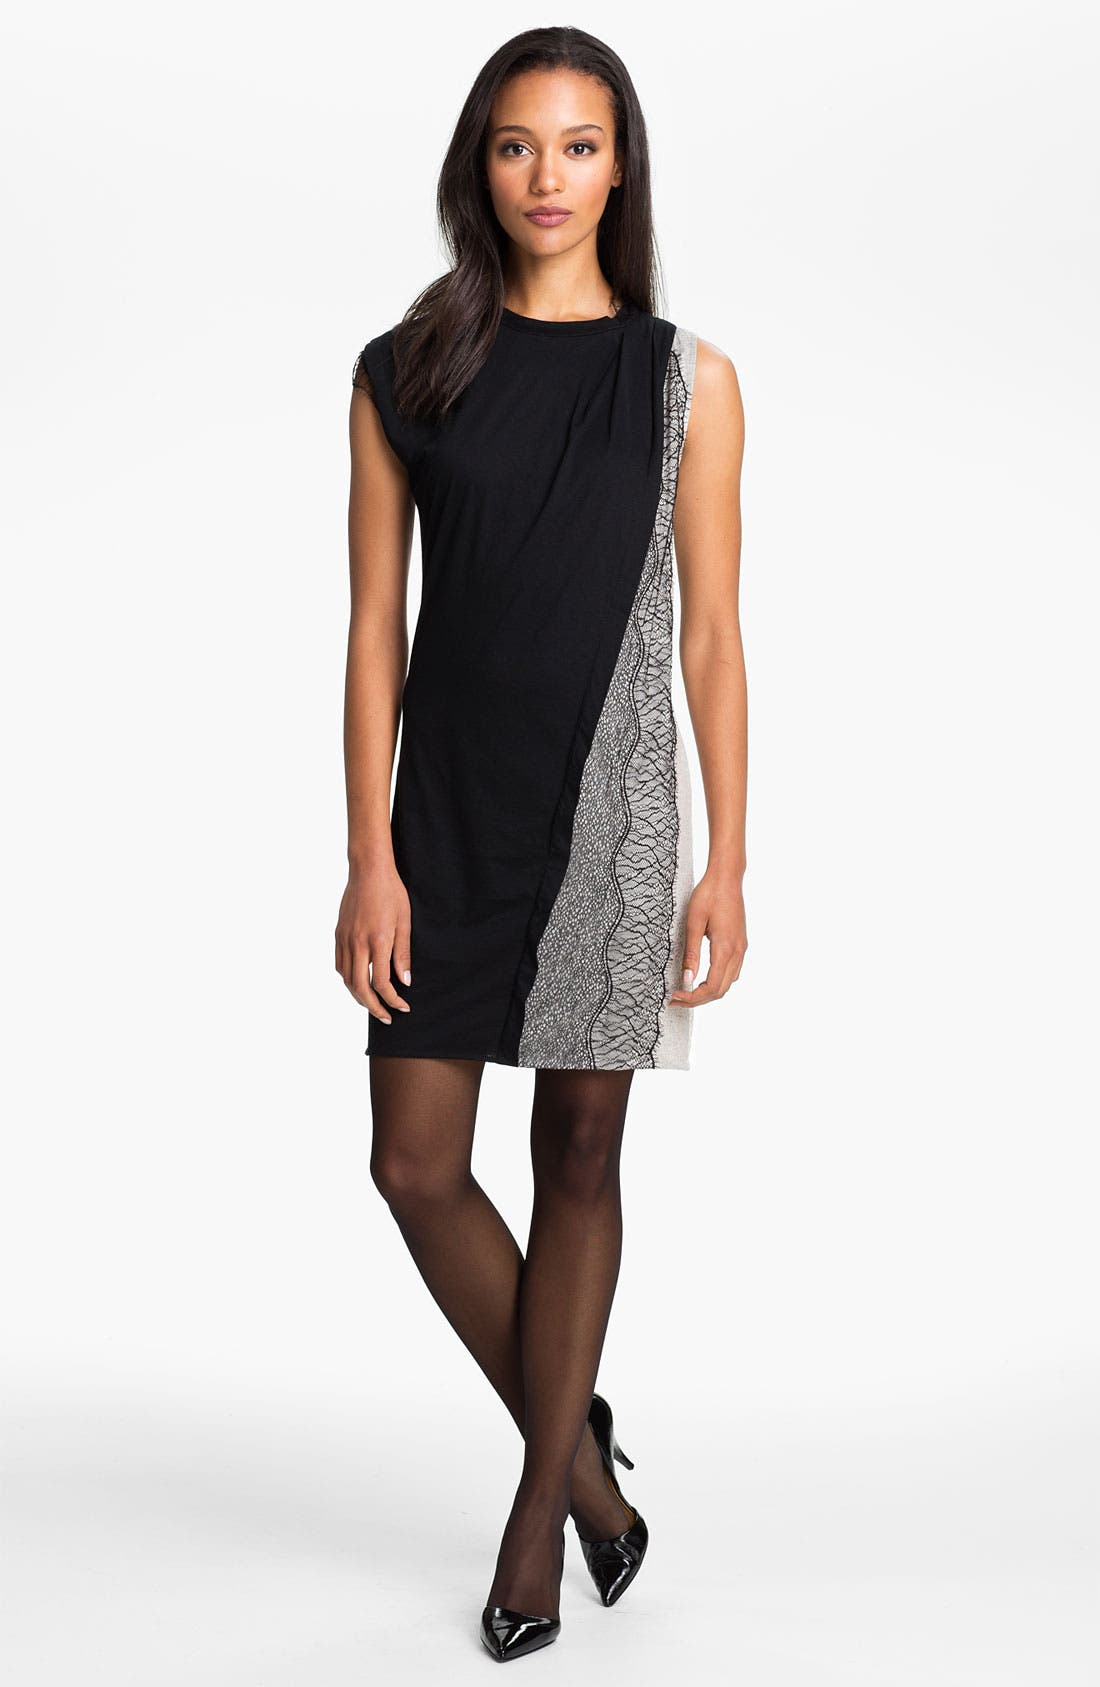 Alternate Image 1 Selected - 3.1 Phillip Lim Paneled Lace Dress